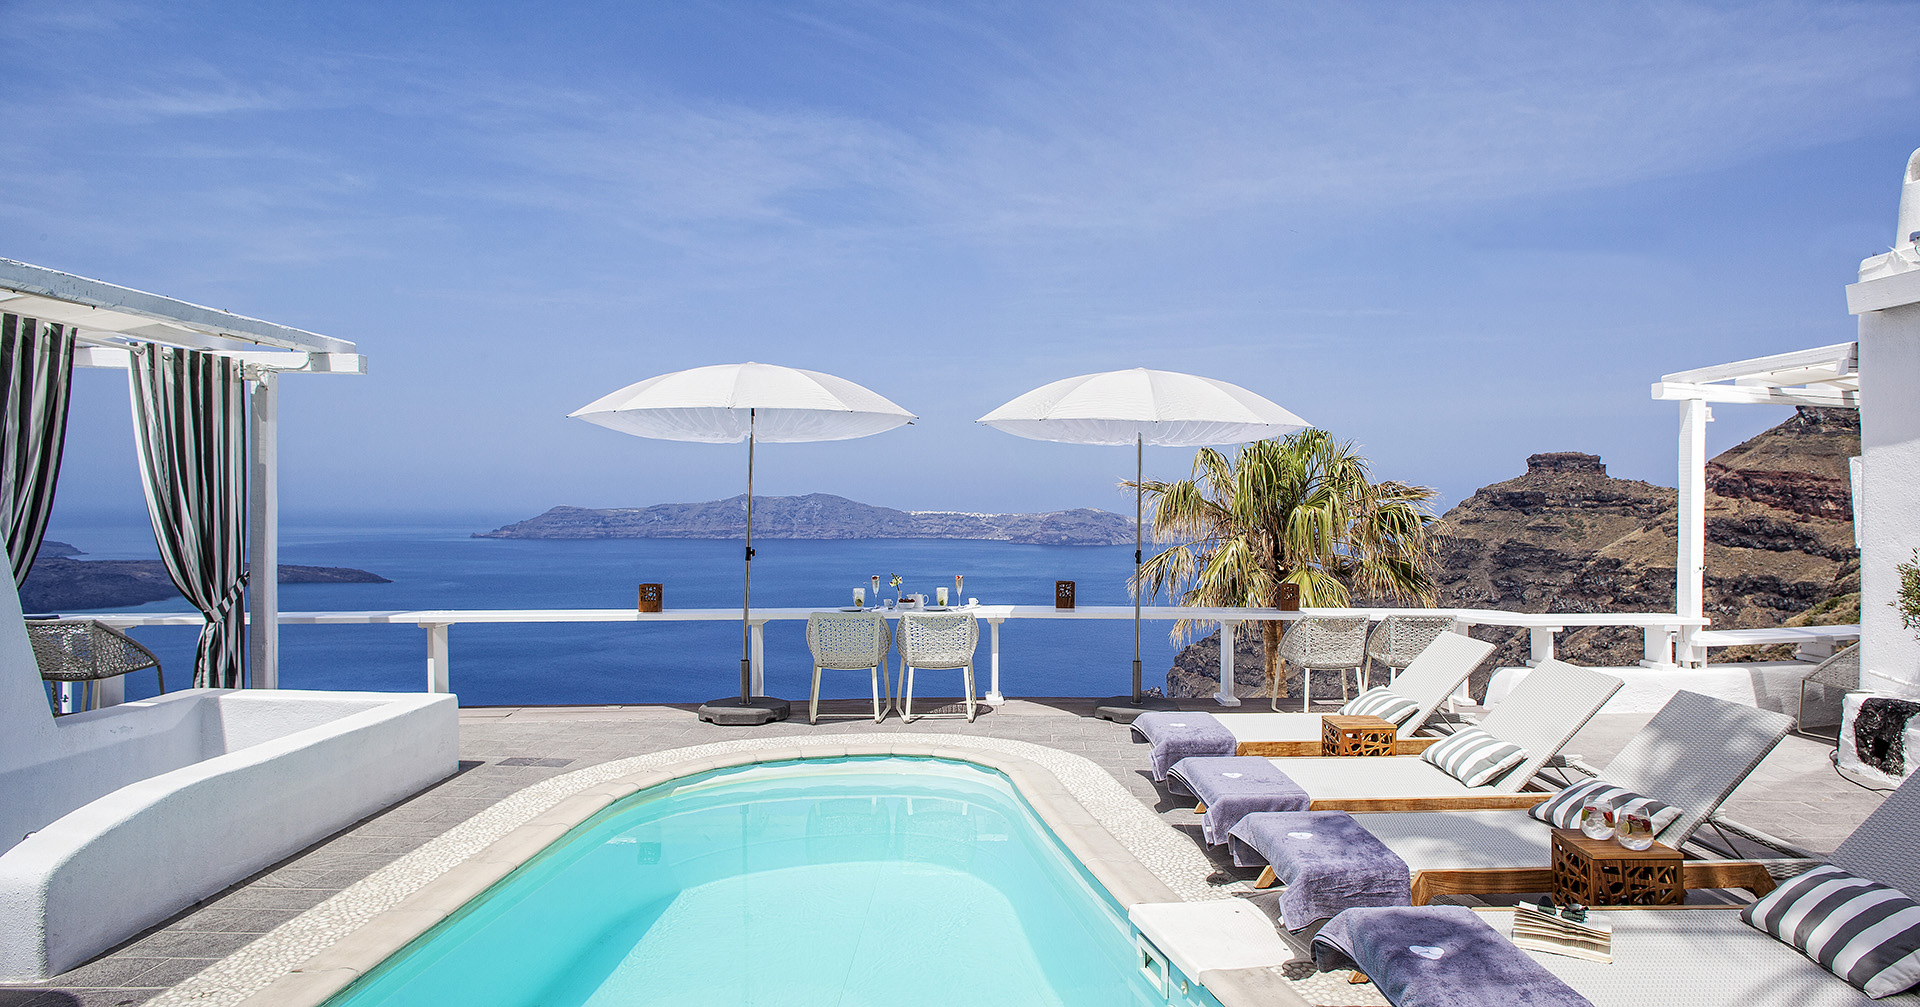 Mill Houses Sensational Santorini Escape – Save 20% With Flexible Policy